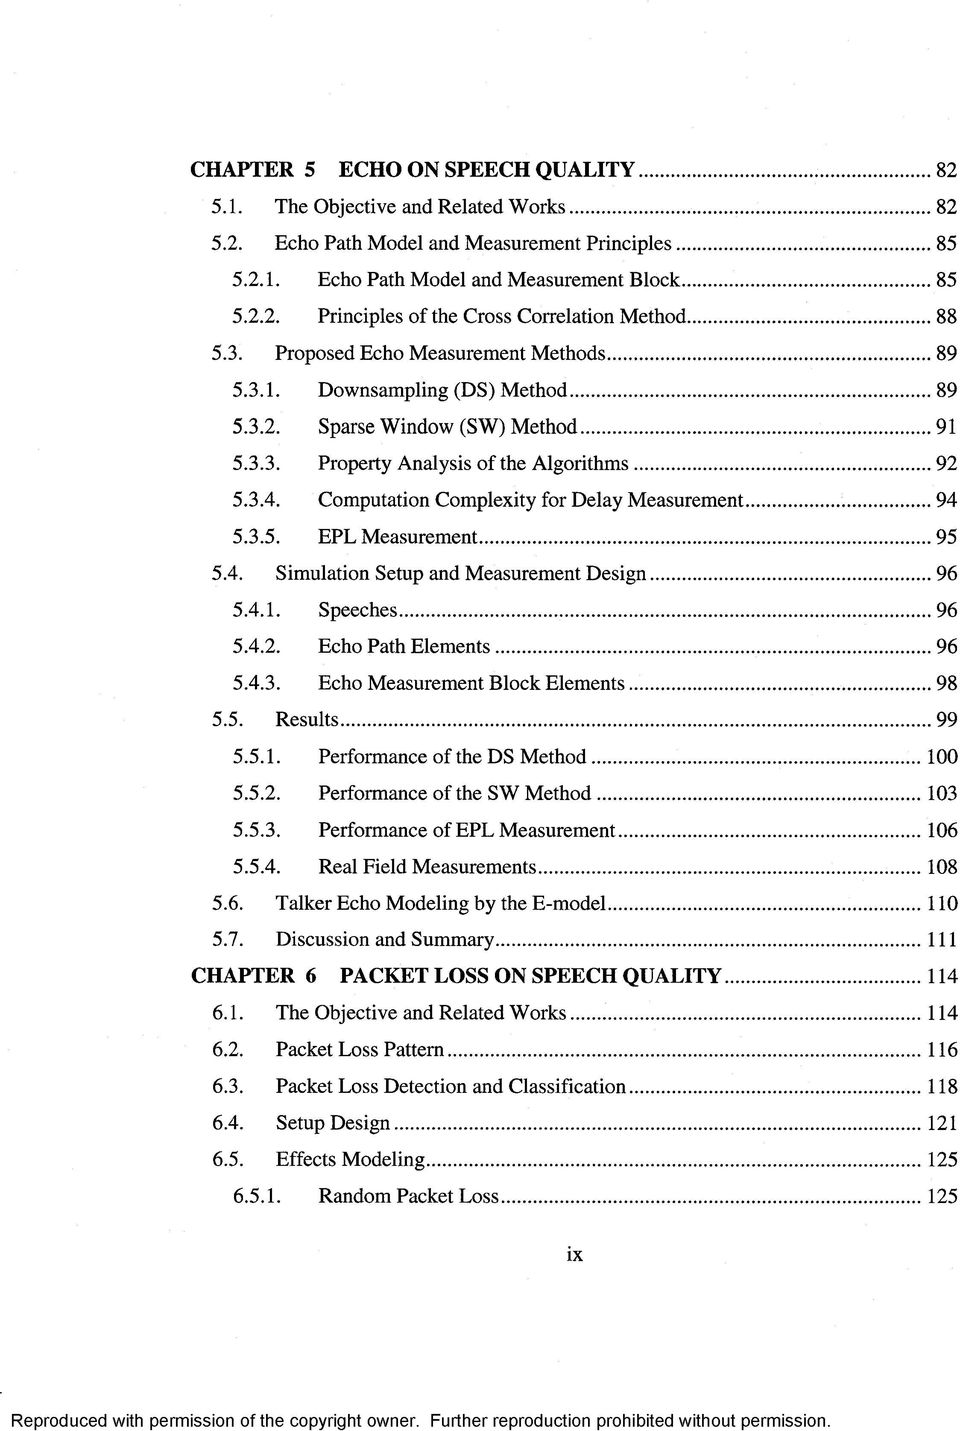 Computation Complexity for Delay Measurement... 94 5.3.5. EPL Measurement... 95 5.4. Simulation Setup and Measurement Design... 96 5.4.1. Speeches...96 5.4.2. Echo Path Elem ents... 96 5.4.3. Echo Measurement Block Elements.